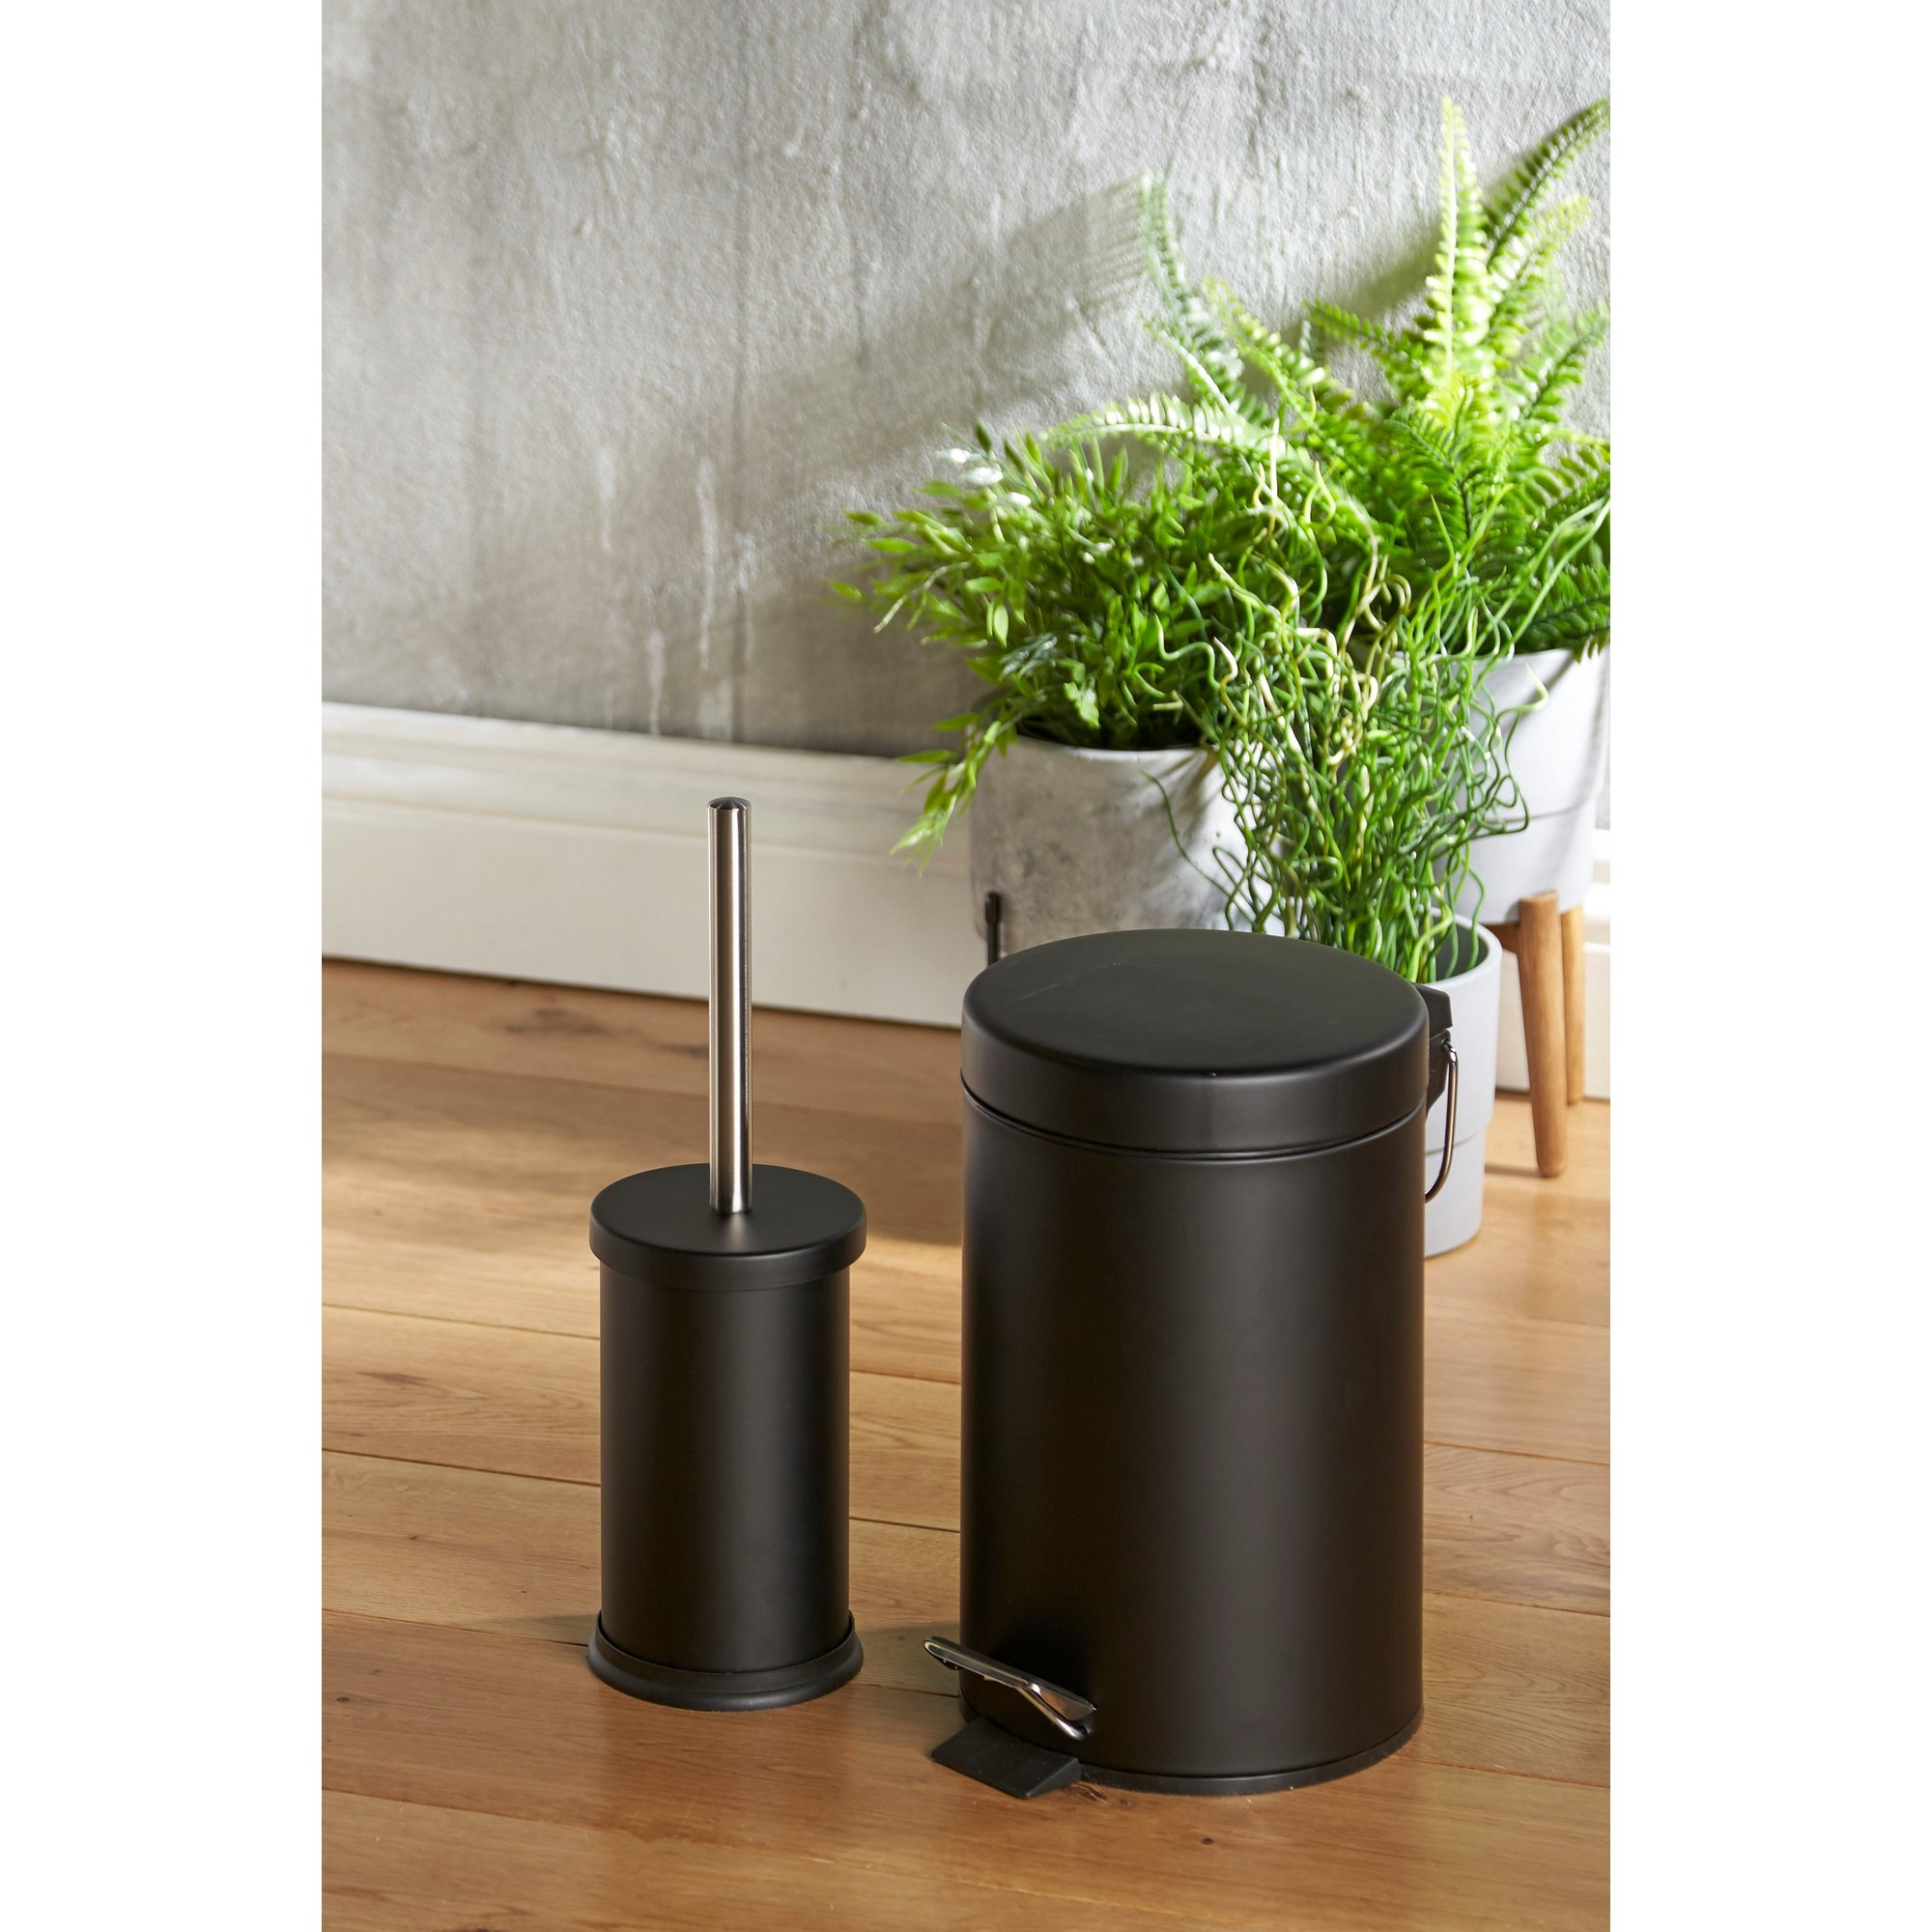 Image of 3 Litre Pedal Bin and Toilet Brush Set